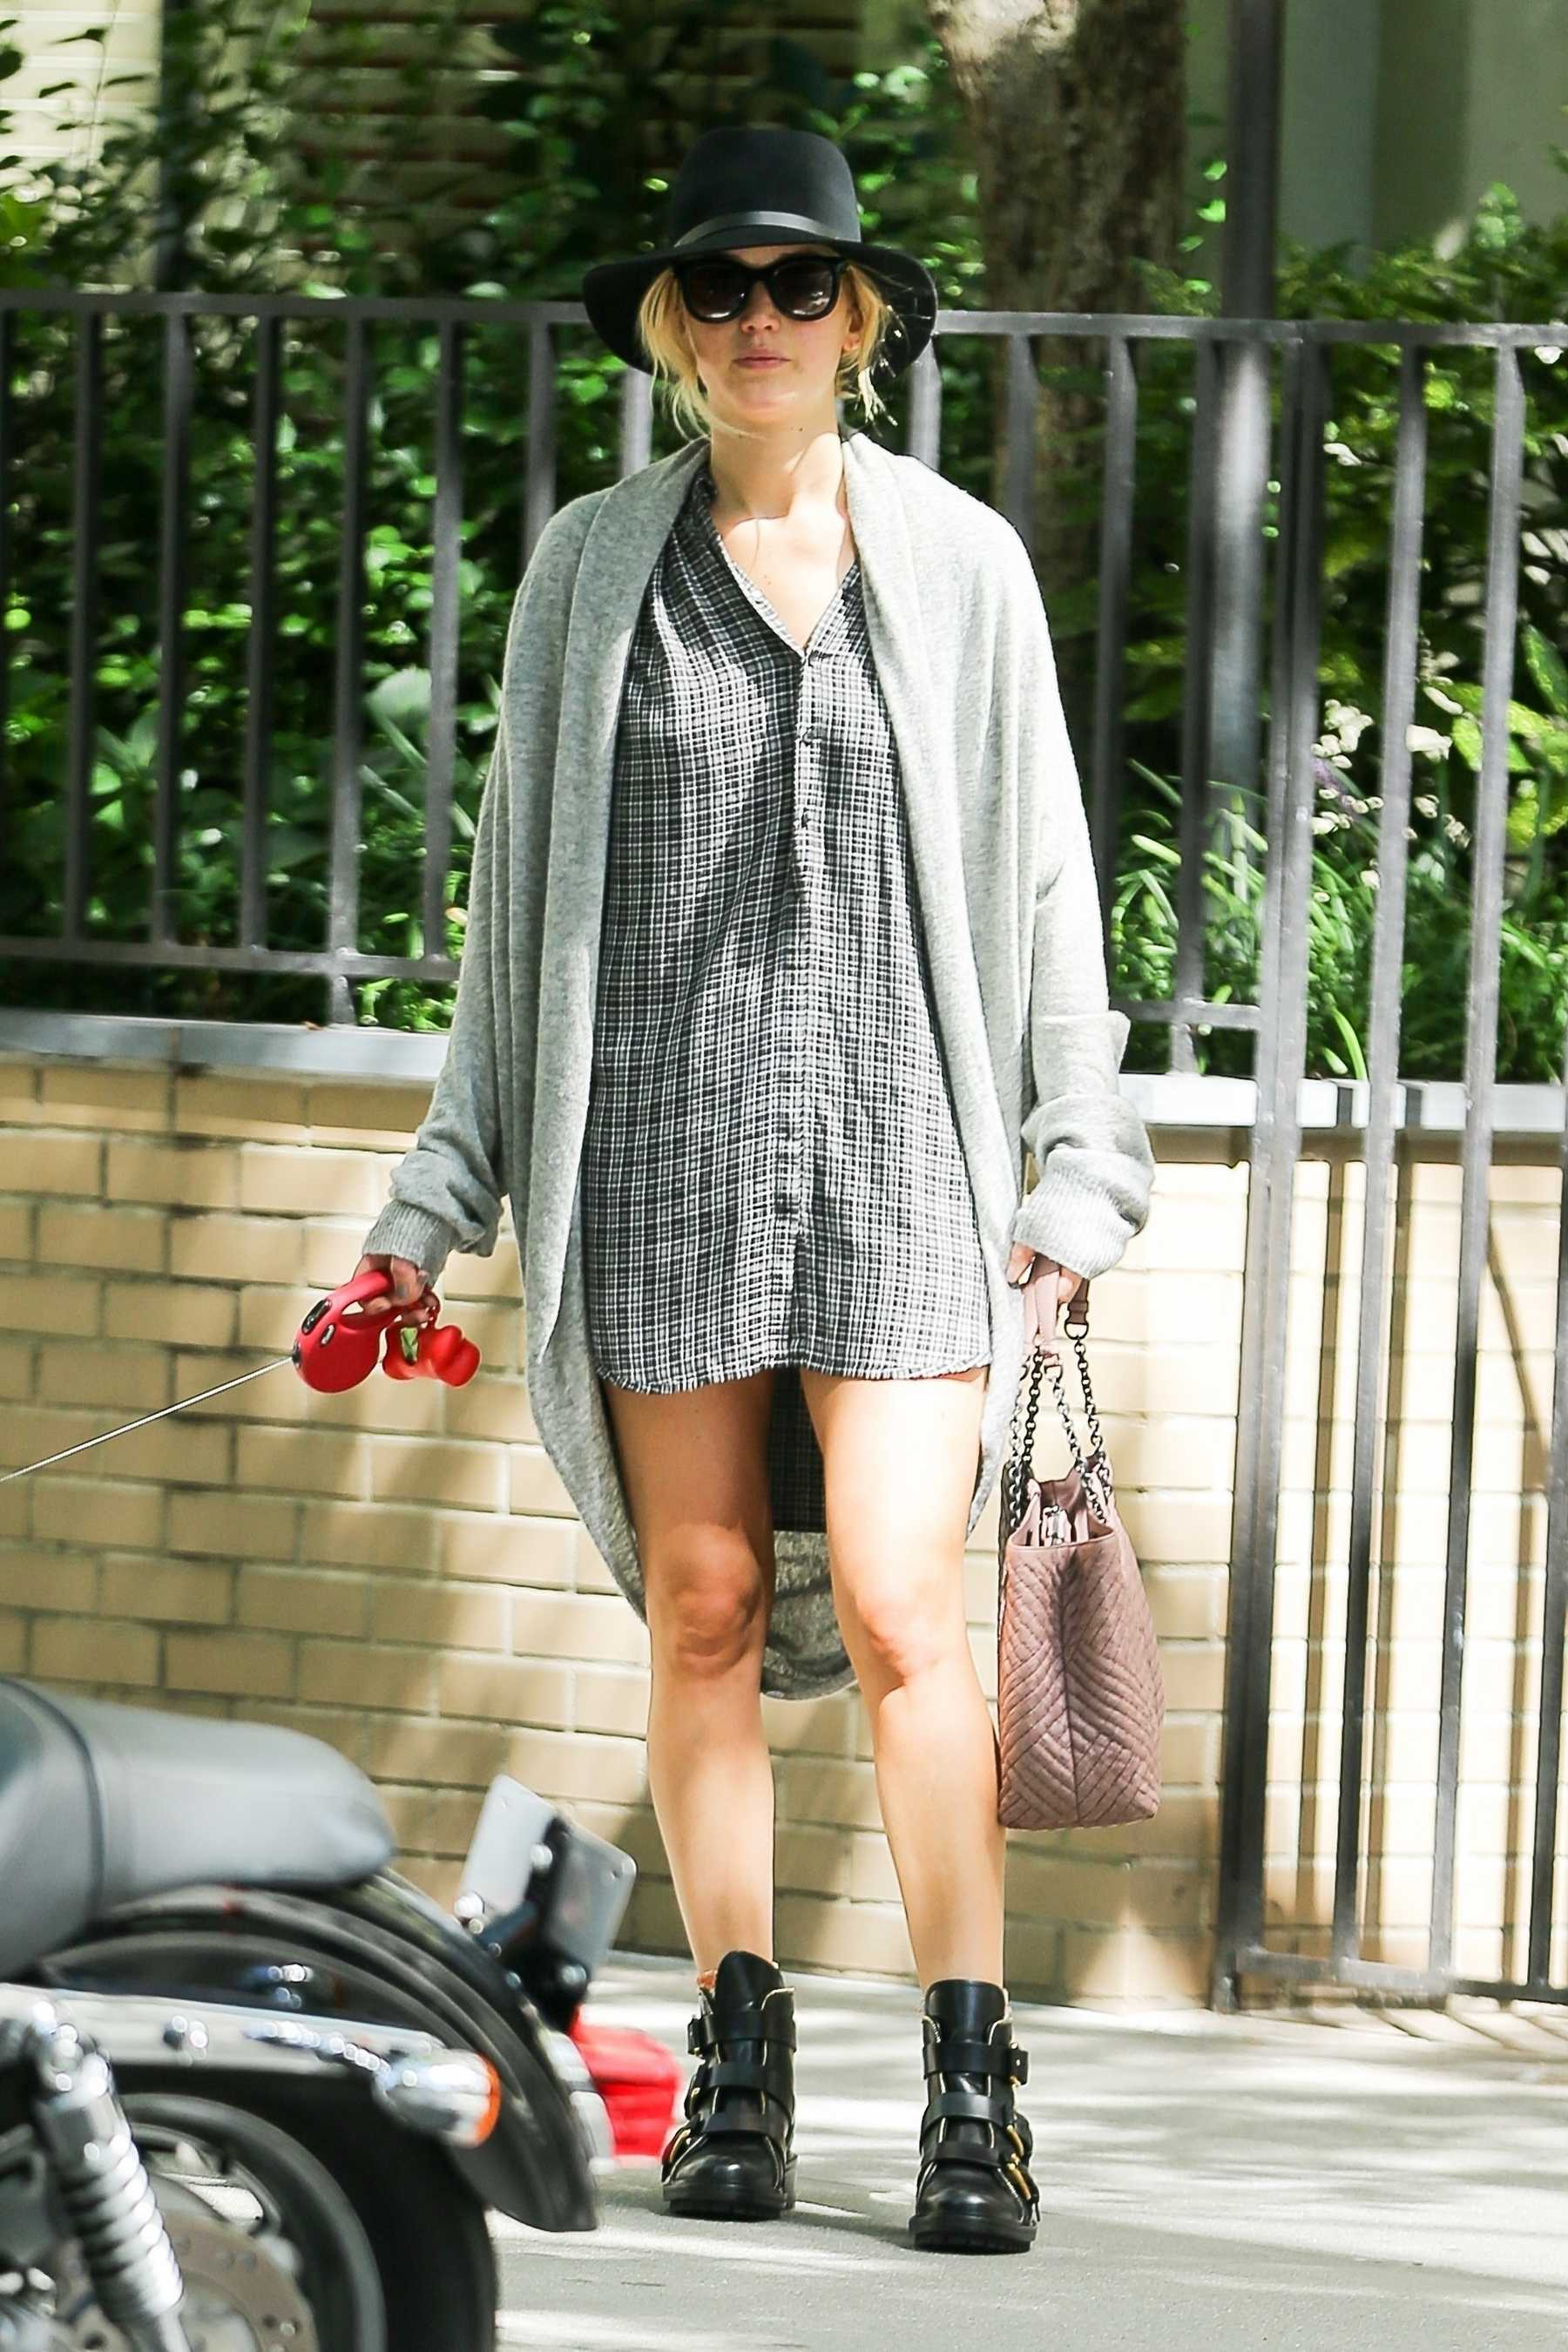 http://jenniferlawrencedaily.com/gallery/albums/userpics/10001/Jennifer_Lawrence_-_Goes_for_a_stroll_with_her_dog_Pippi_in_NYC_on_September_1-01.jpg